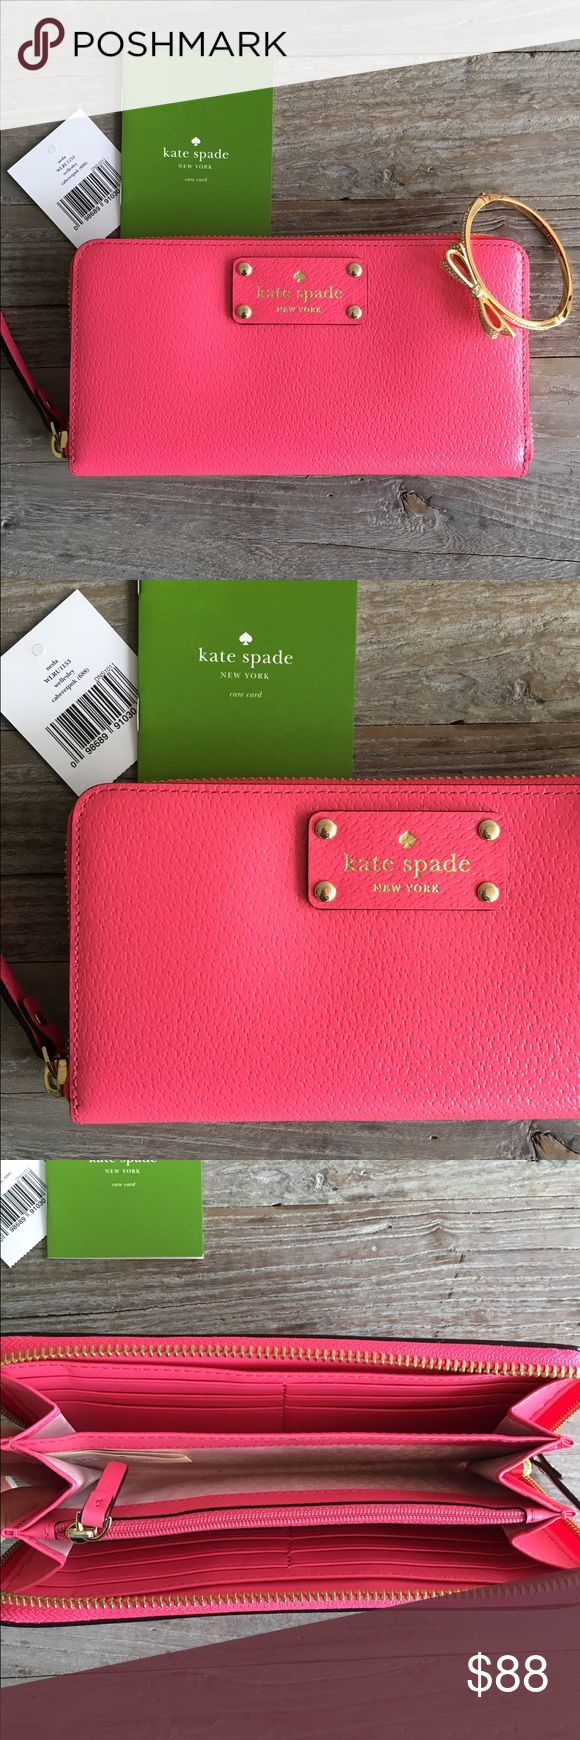 NWT Kate Spade Leather Wallet 💕 Brand new with tag Kate Spade Wallet in cabaret pink! Gorgeous! No trades or negotiating in comments. Bracelet sold separately. All items in my closet are authentic guaranteed. kate spade Bags Wallets